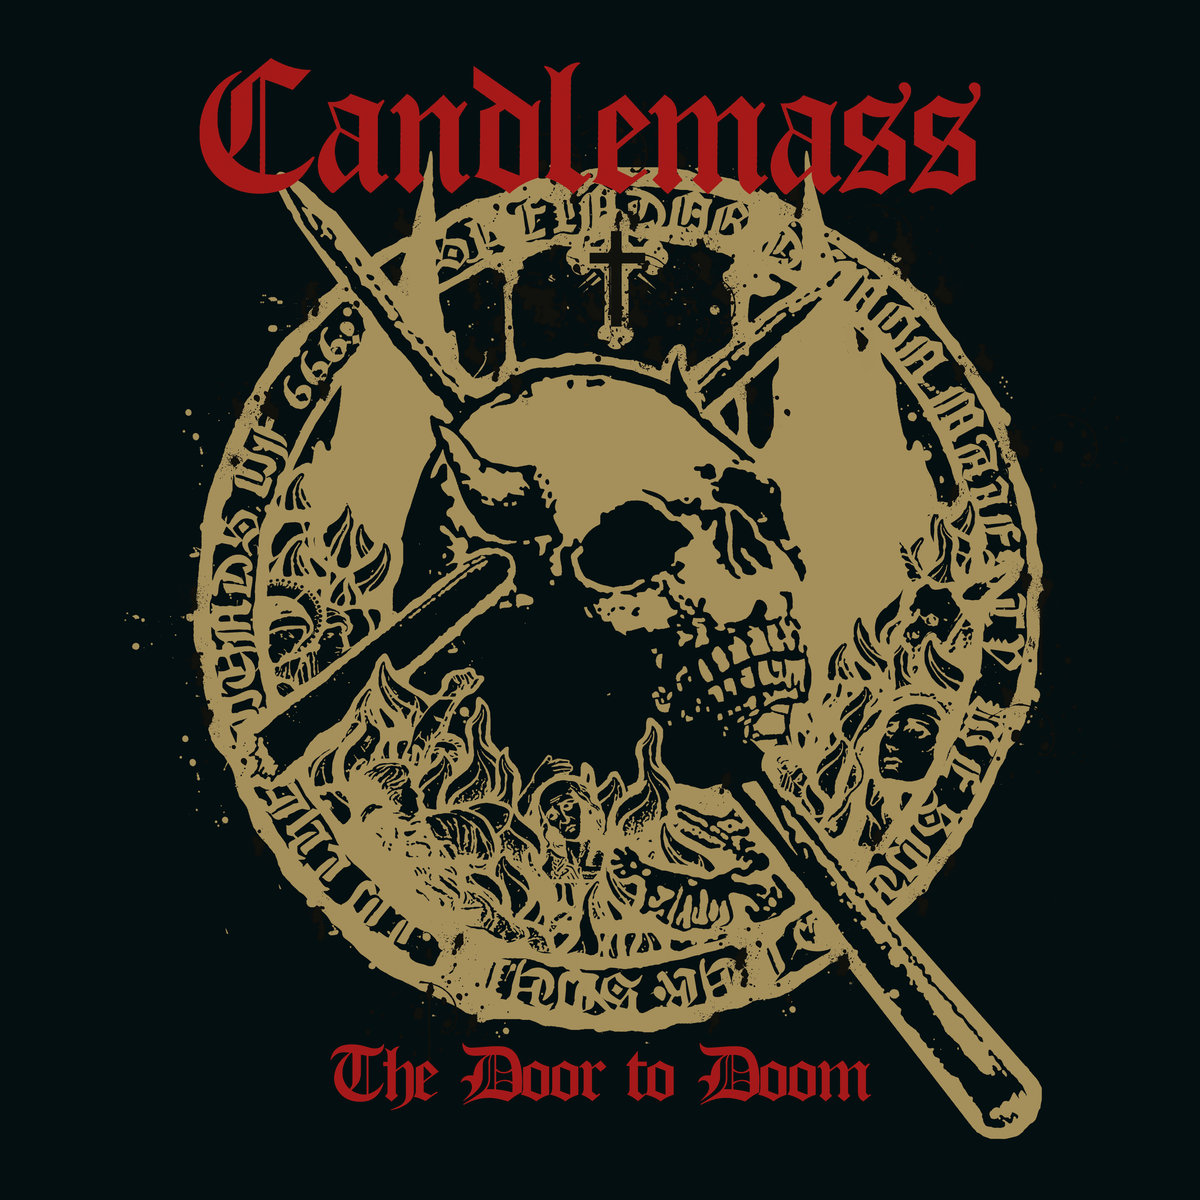 Candlemass | The Door to Doom | Napalm